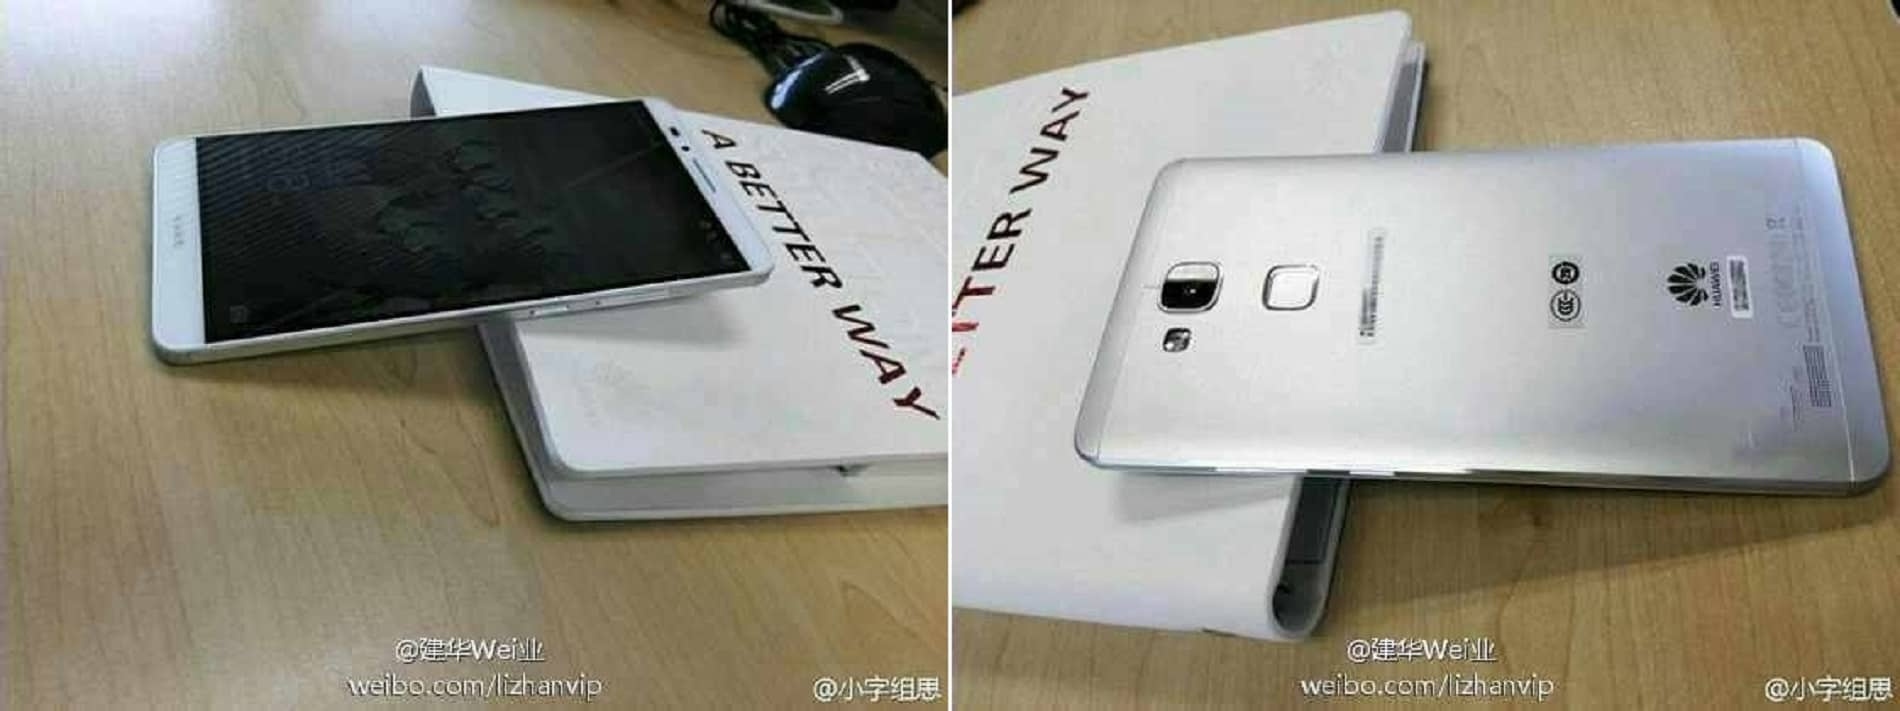 More Huawei Ascend Mate 7 Images leaked prior to IFA launch